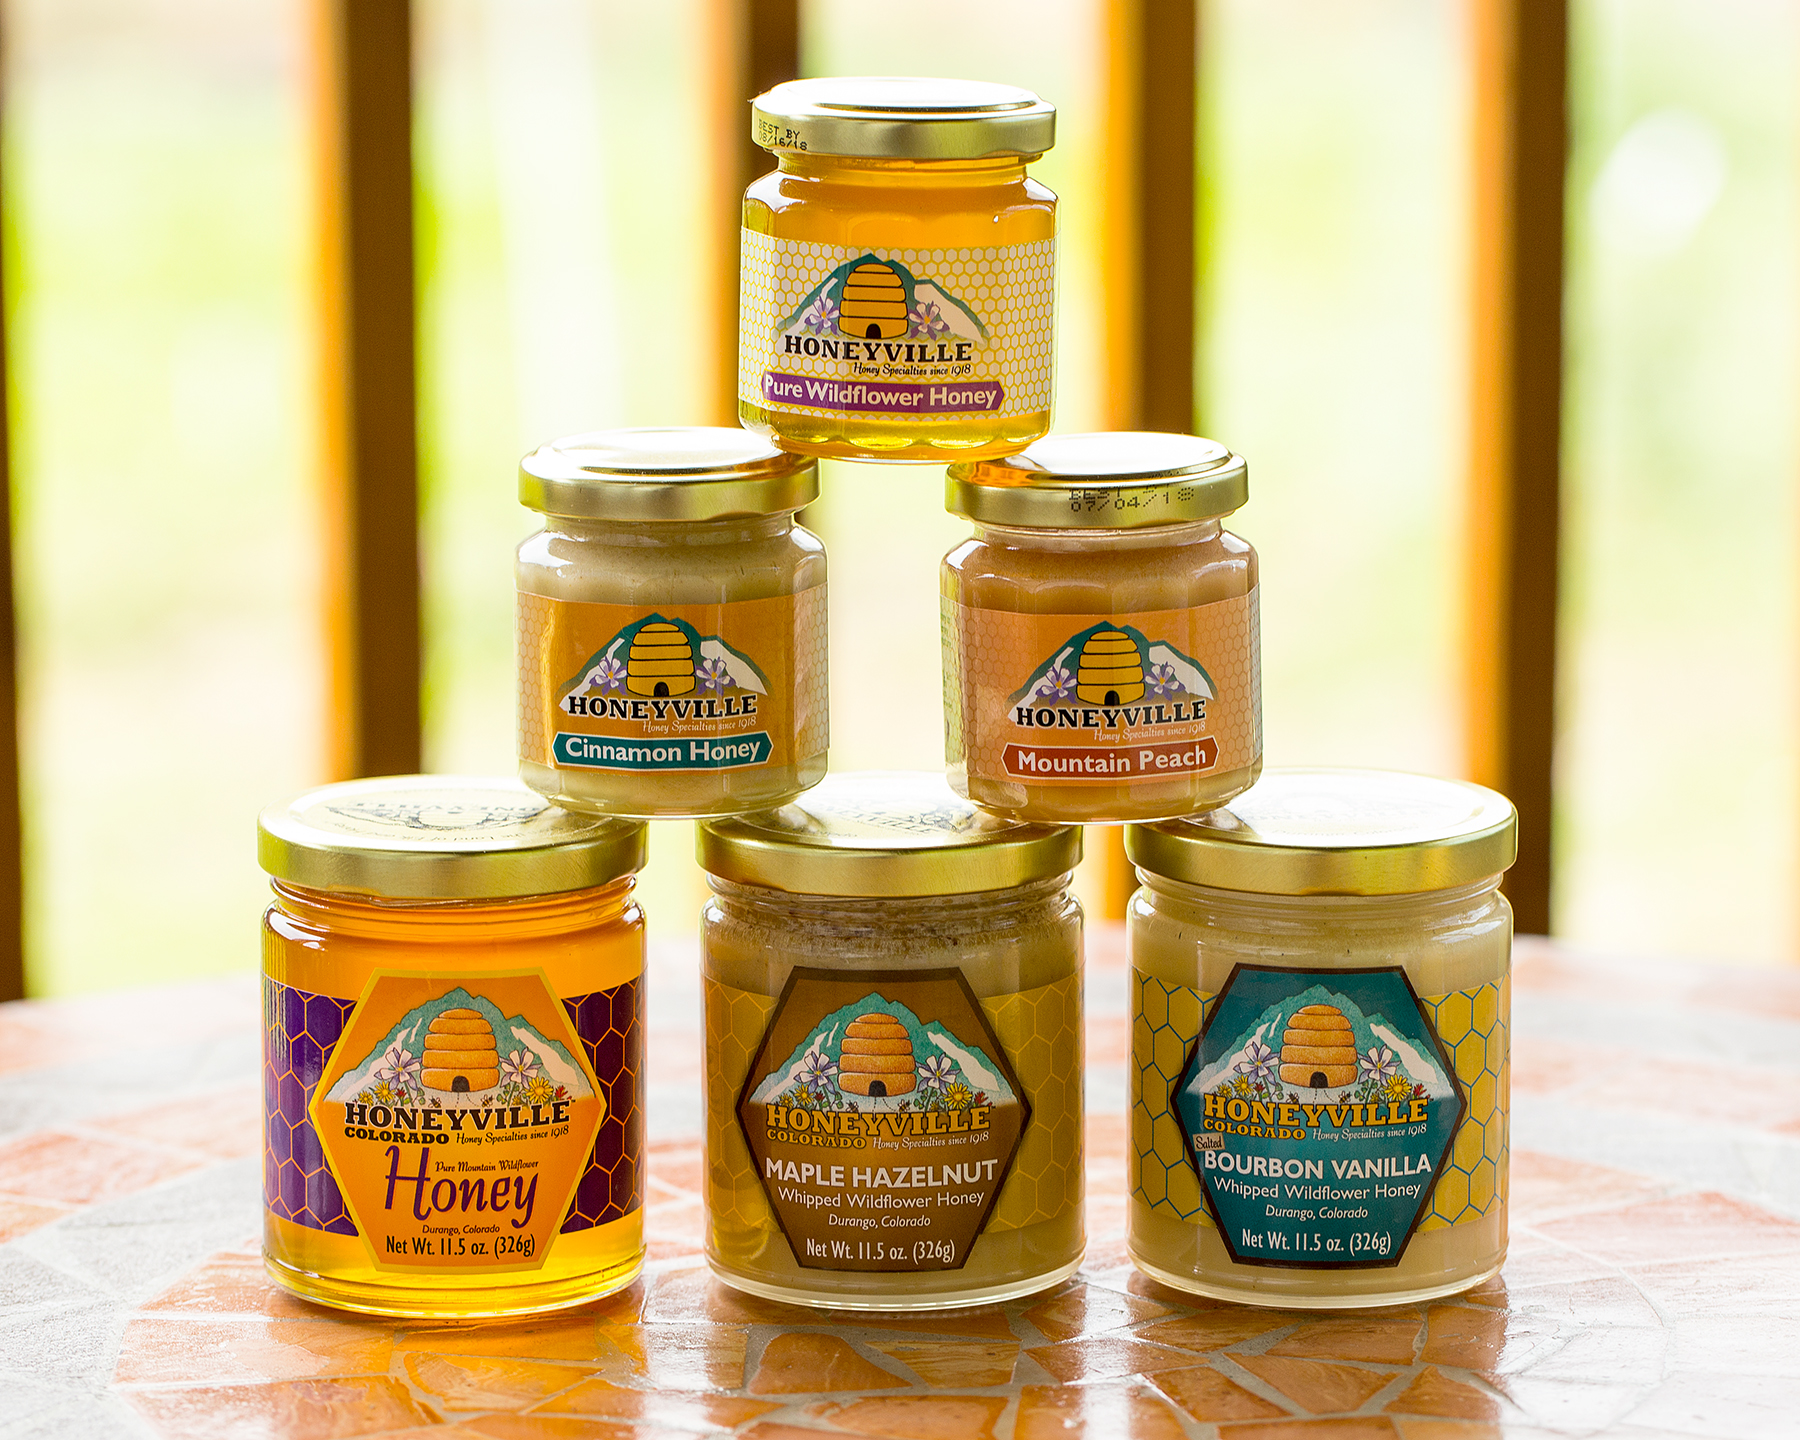 Honeyville products, from Durango, CO, make wonderful gifts